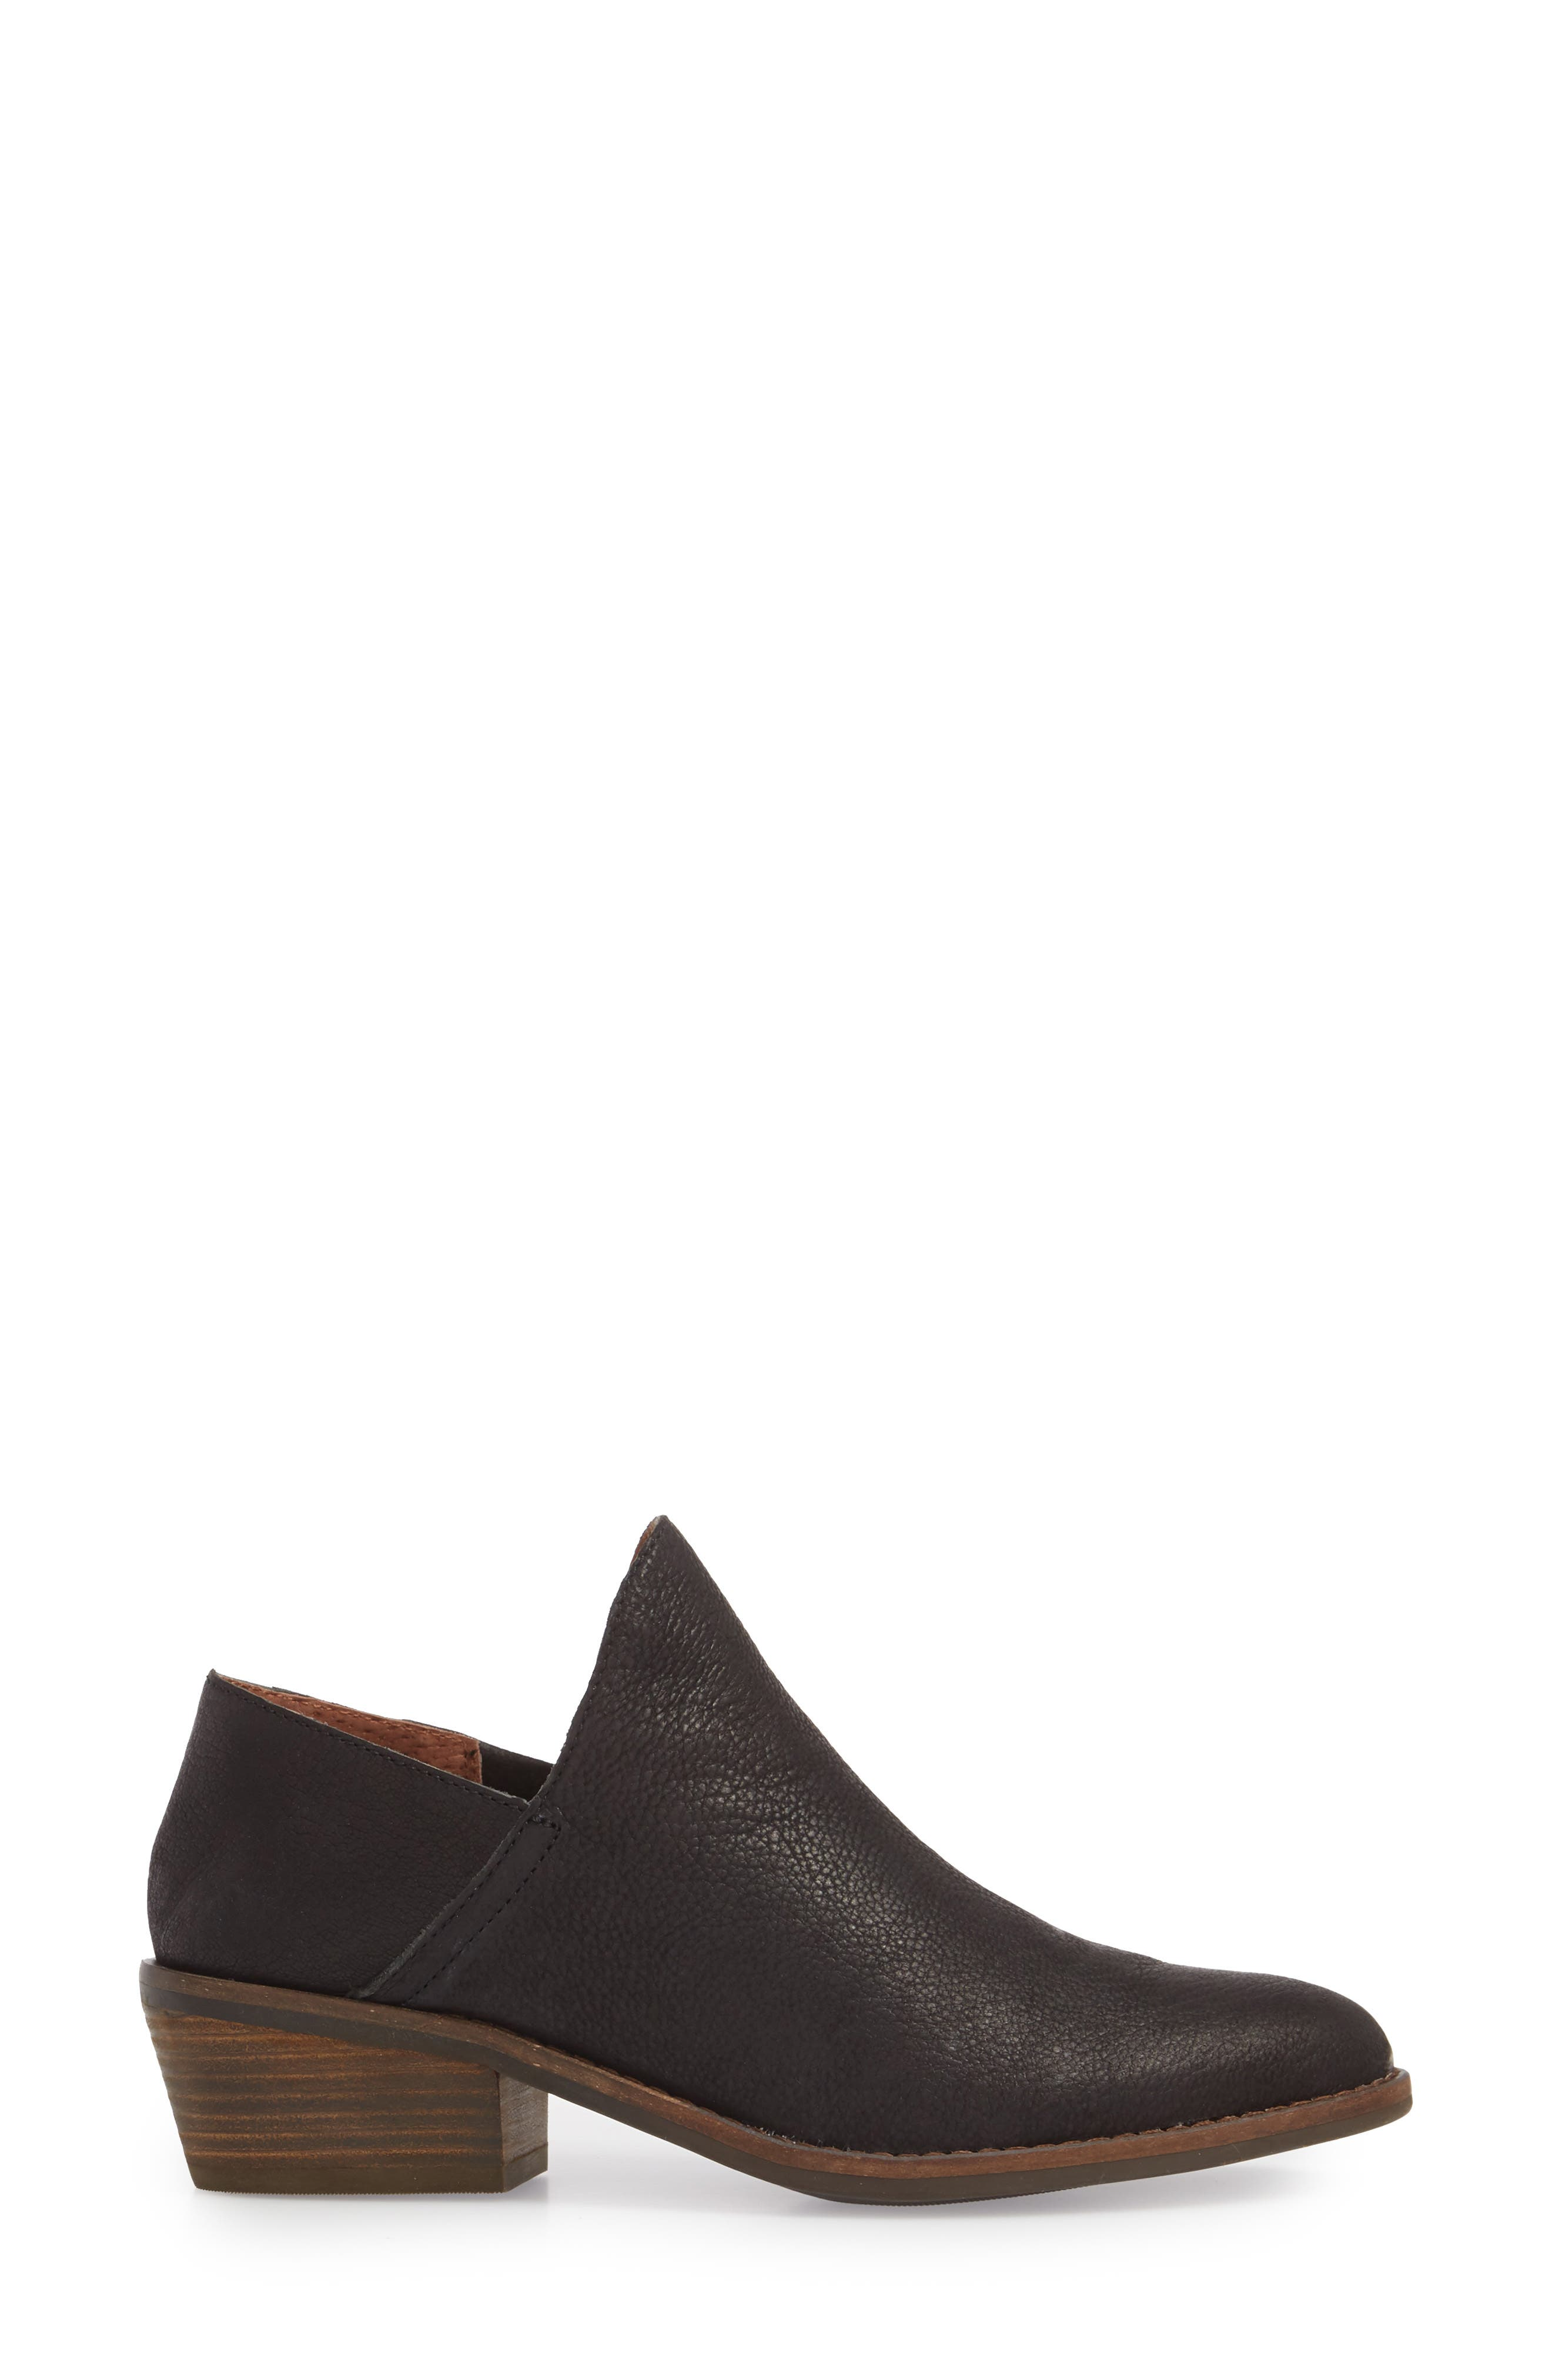 LUCKY BRAND,                             Fausst Bootie,                             Alternate thumbnail 3, color,                             001